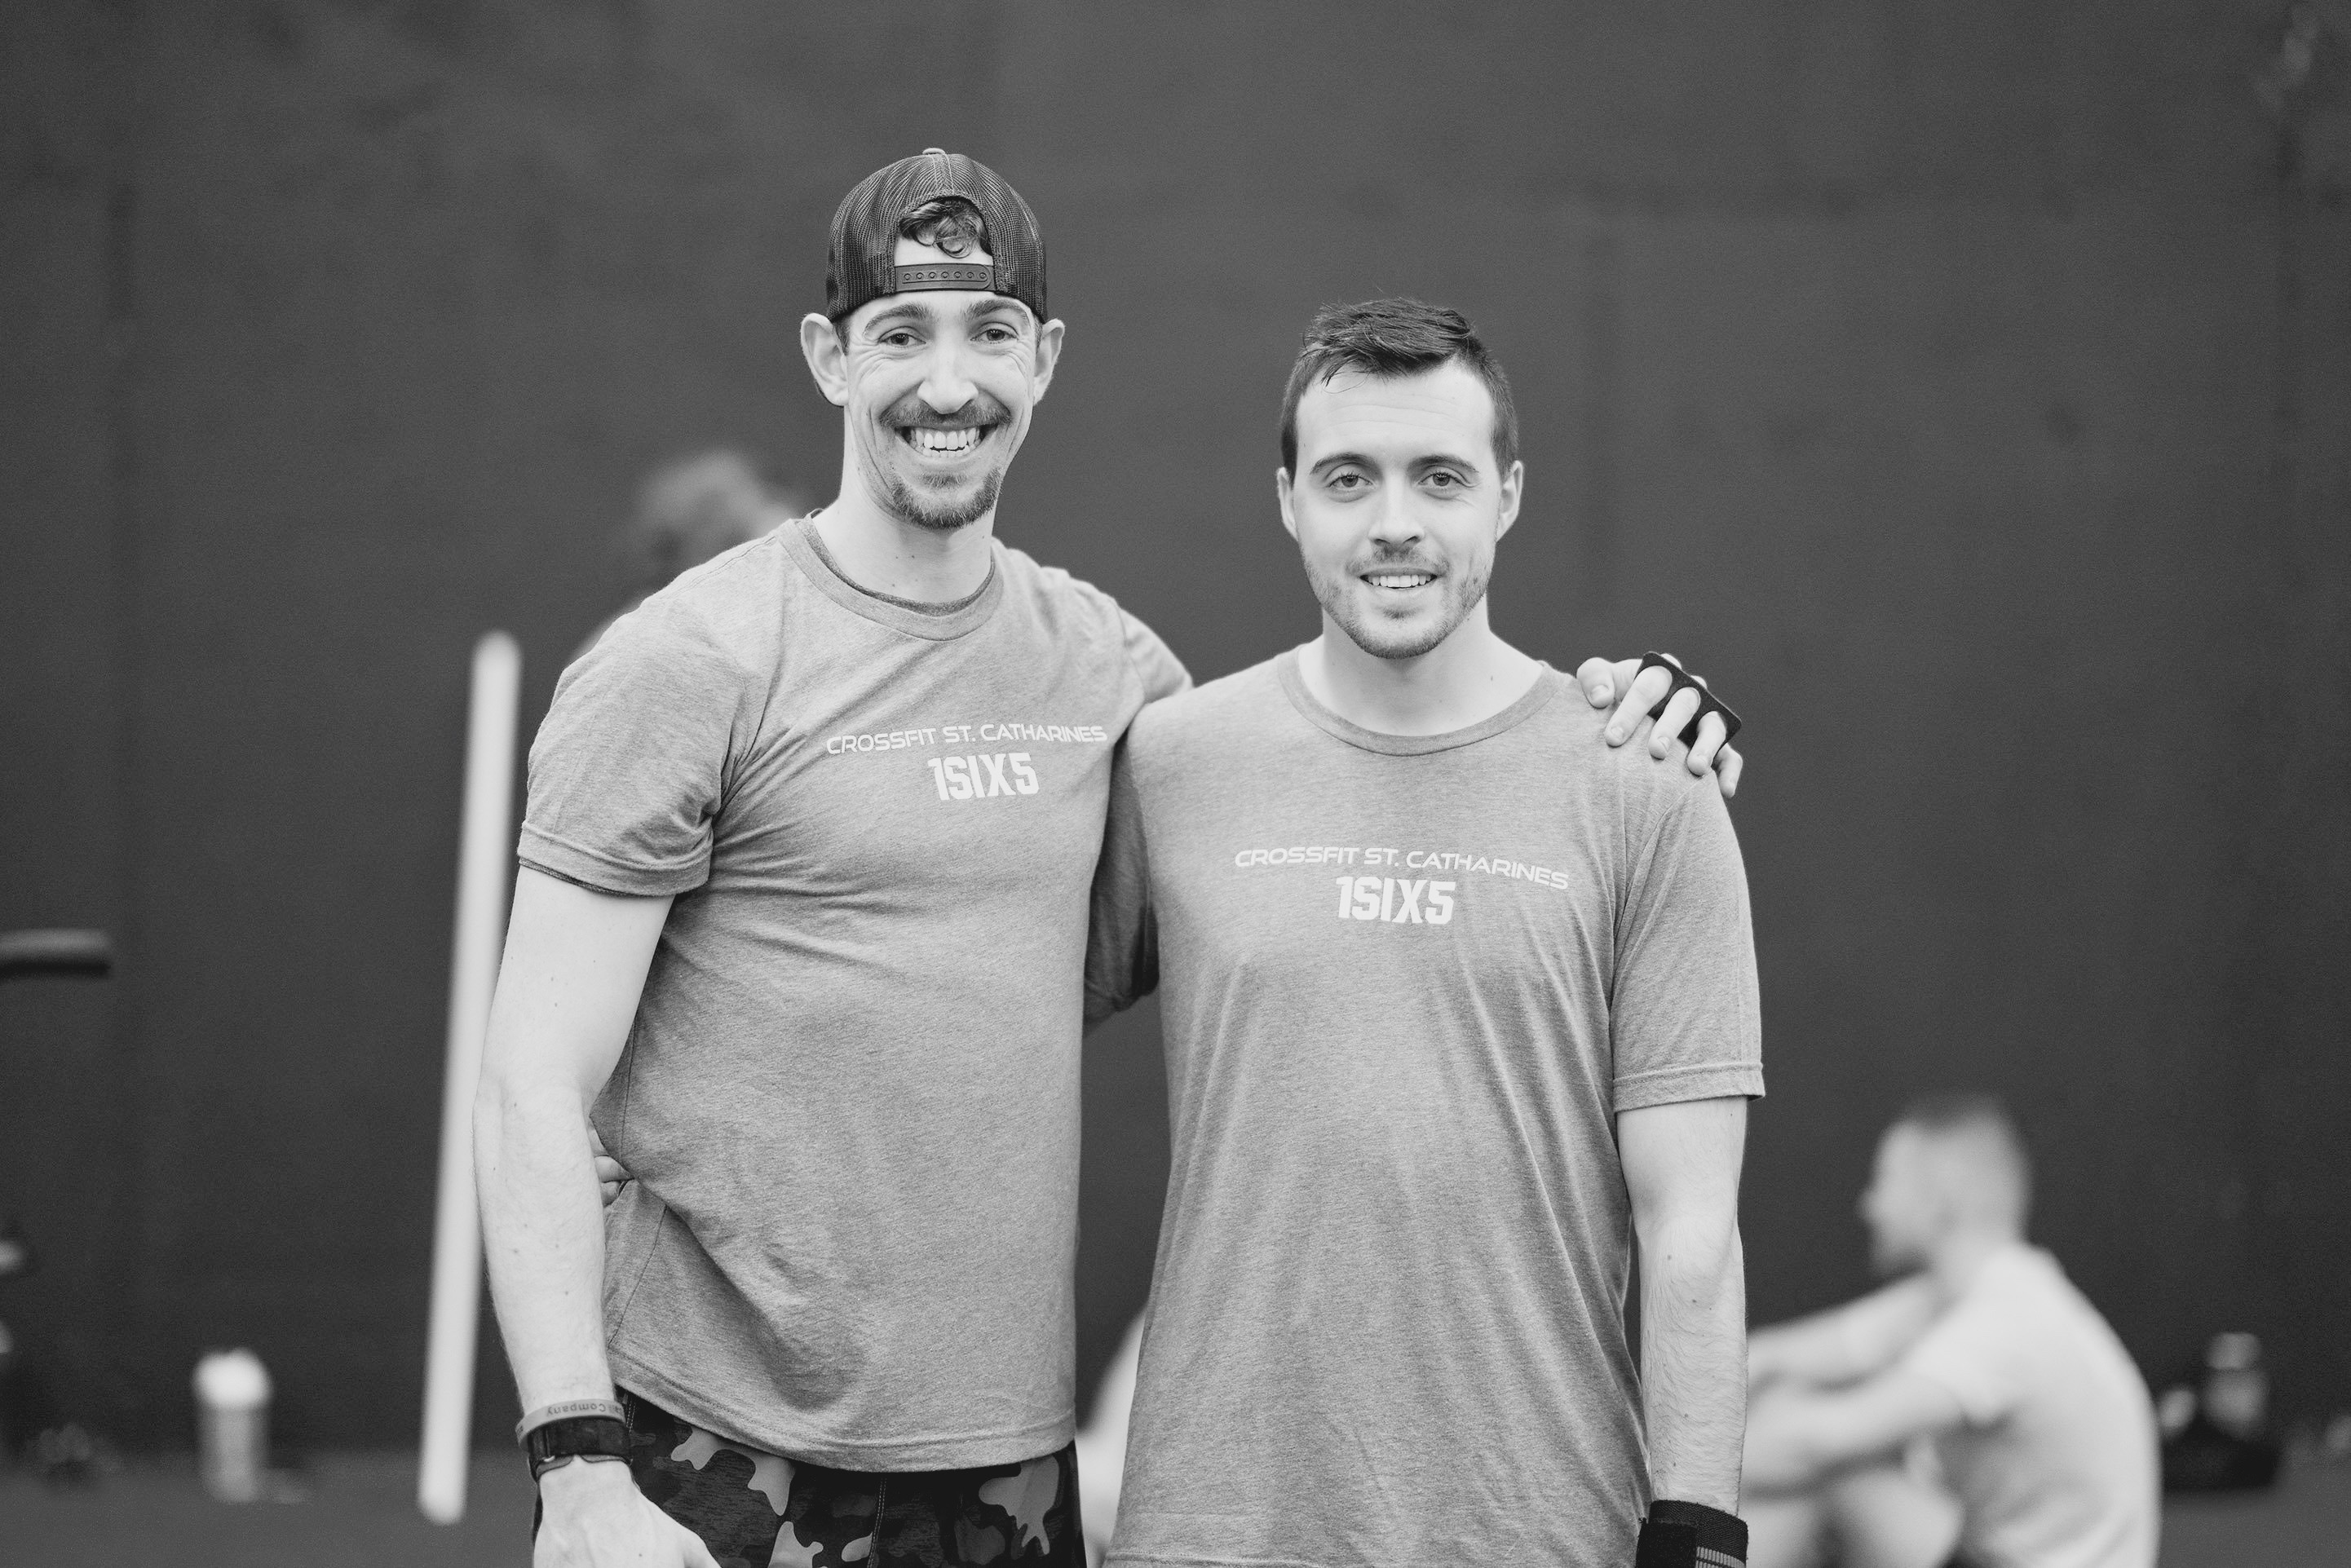 Getting Started, Crossfit St. Catharines, NIagara